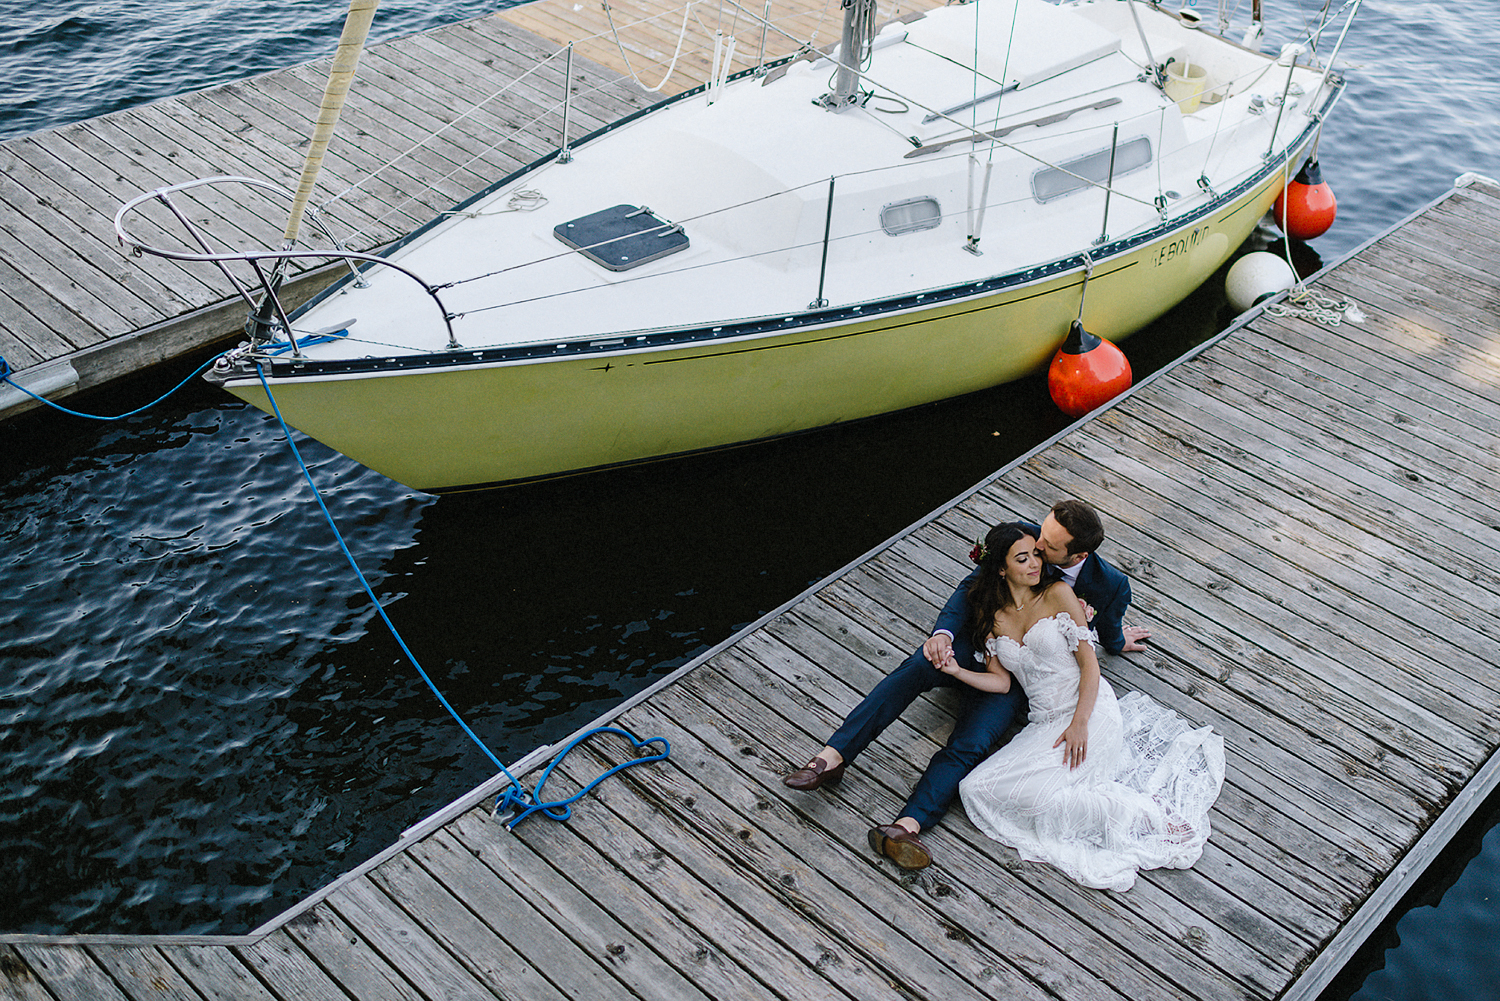 Muskoka-Cottage-Wedding-Photography-Photographer_Photojournalistic-Documentary-Wedding-Photography_Vintage-Bride-Lovers-Land-Dress_Rue-Des-Seins_Forest-Ceremony-Bride-and-Groom-Intimate-on-Sailboat.jpg